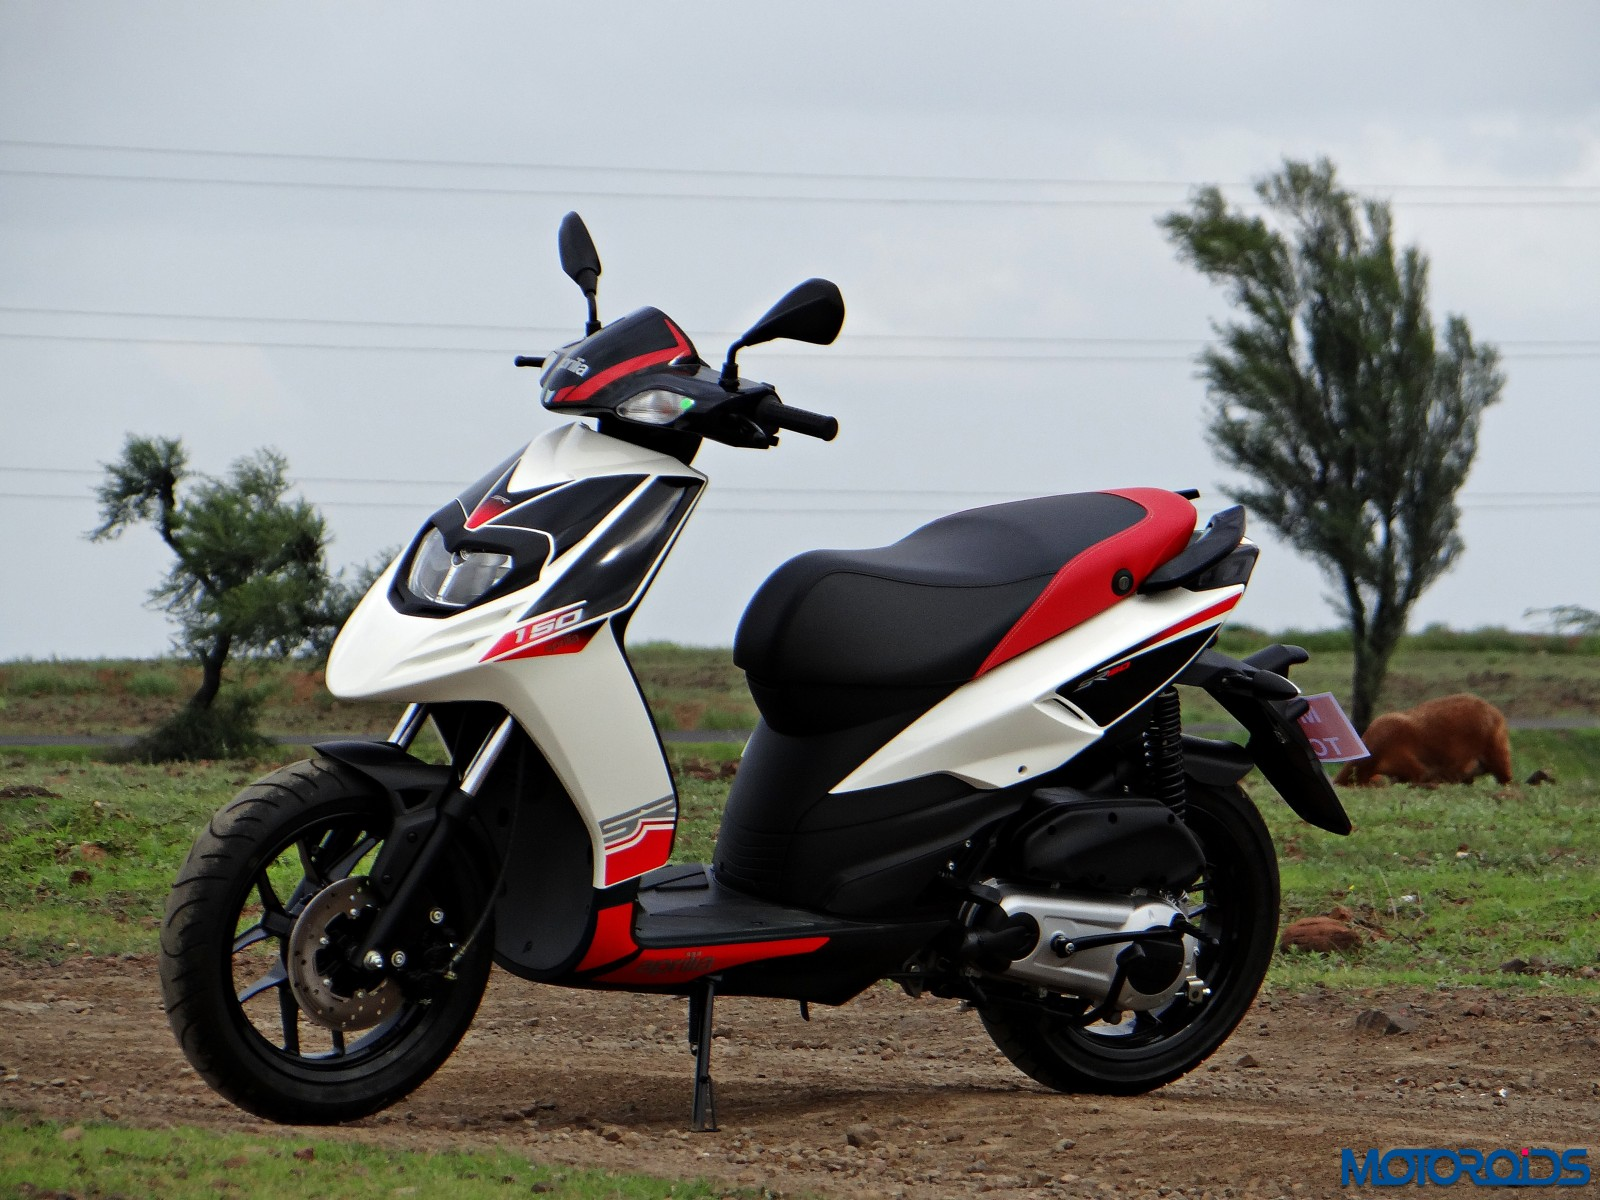 Aprilia SR 150 Review - Still Shots (22)